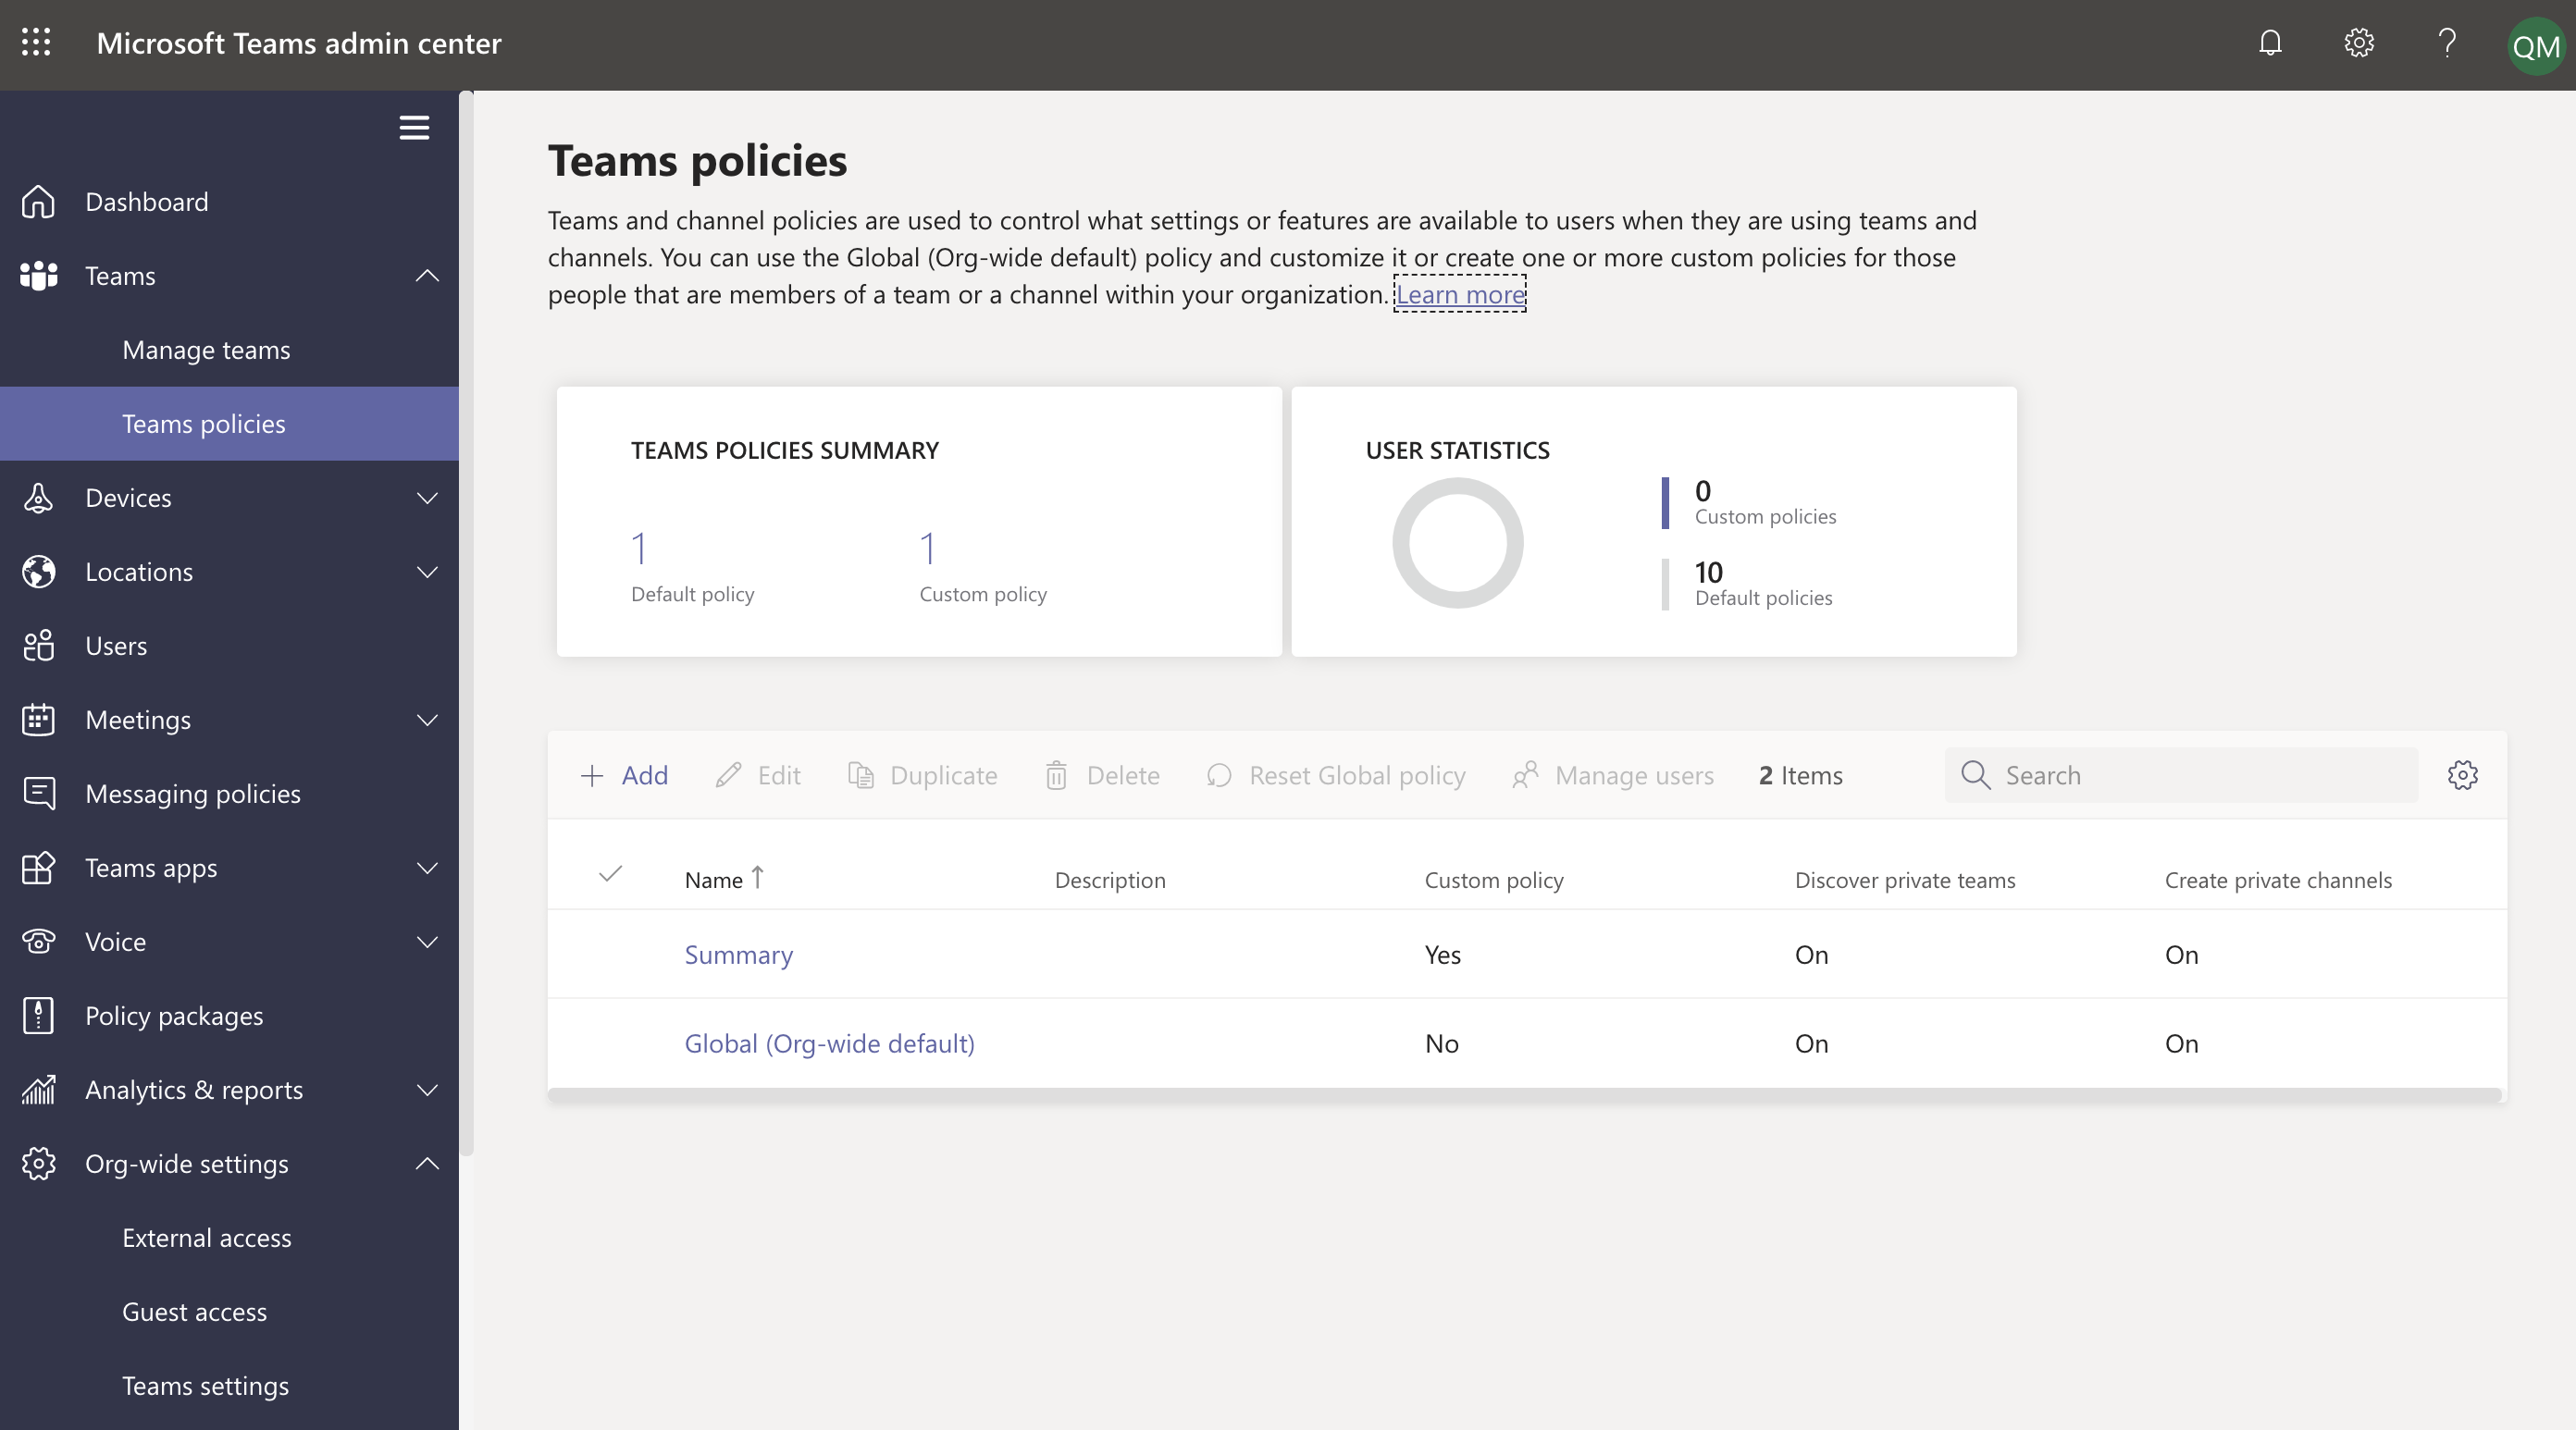 Teams policies in Teams admin center.